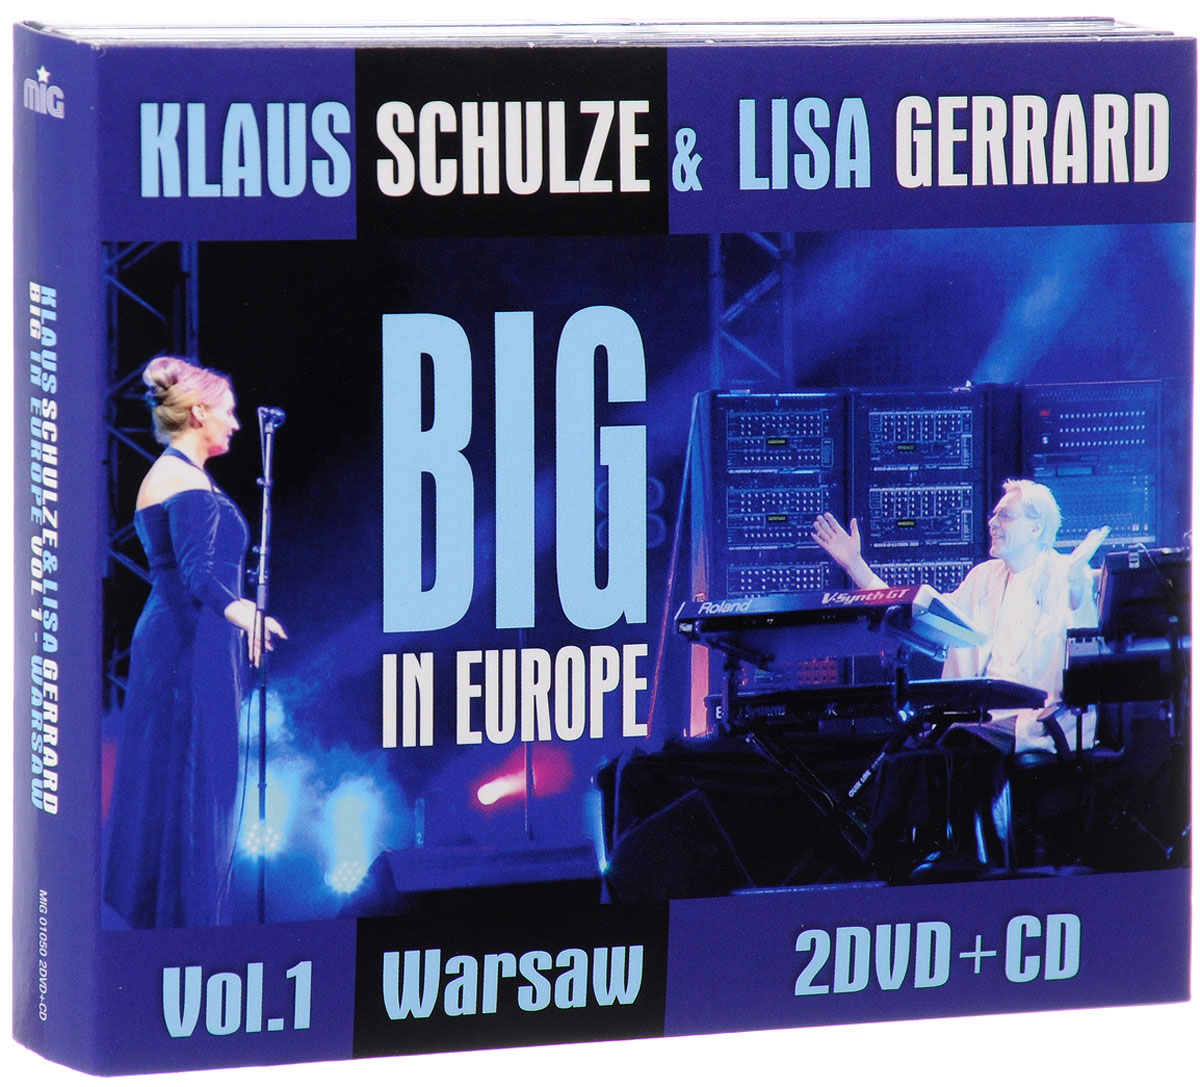 DVD 1:  01. Warsaw, Set 1 02. Warsaw, Set 2 03. Behind The Stage Scenes  DVD 2:  01. A Moogumentary 02. Encores